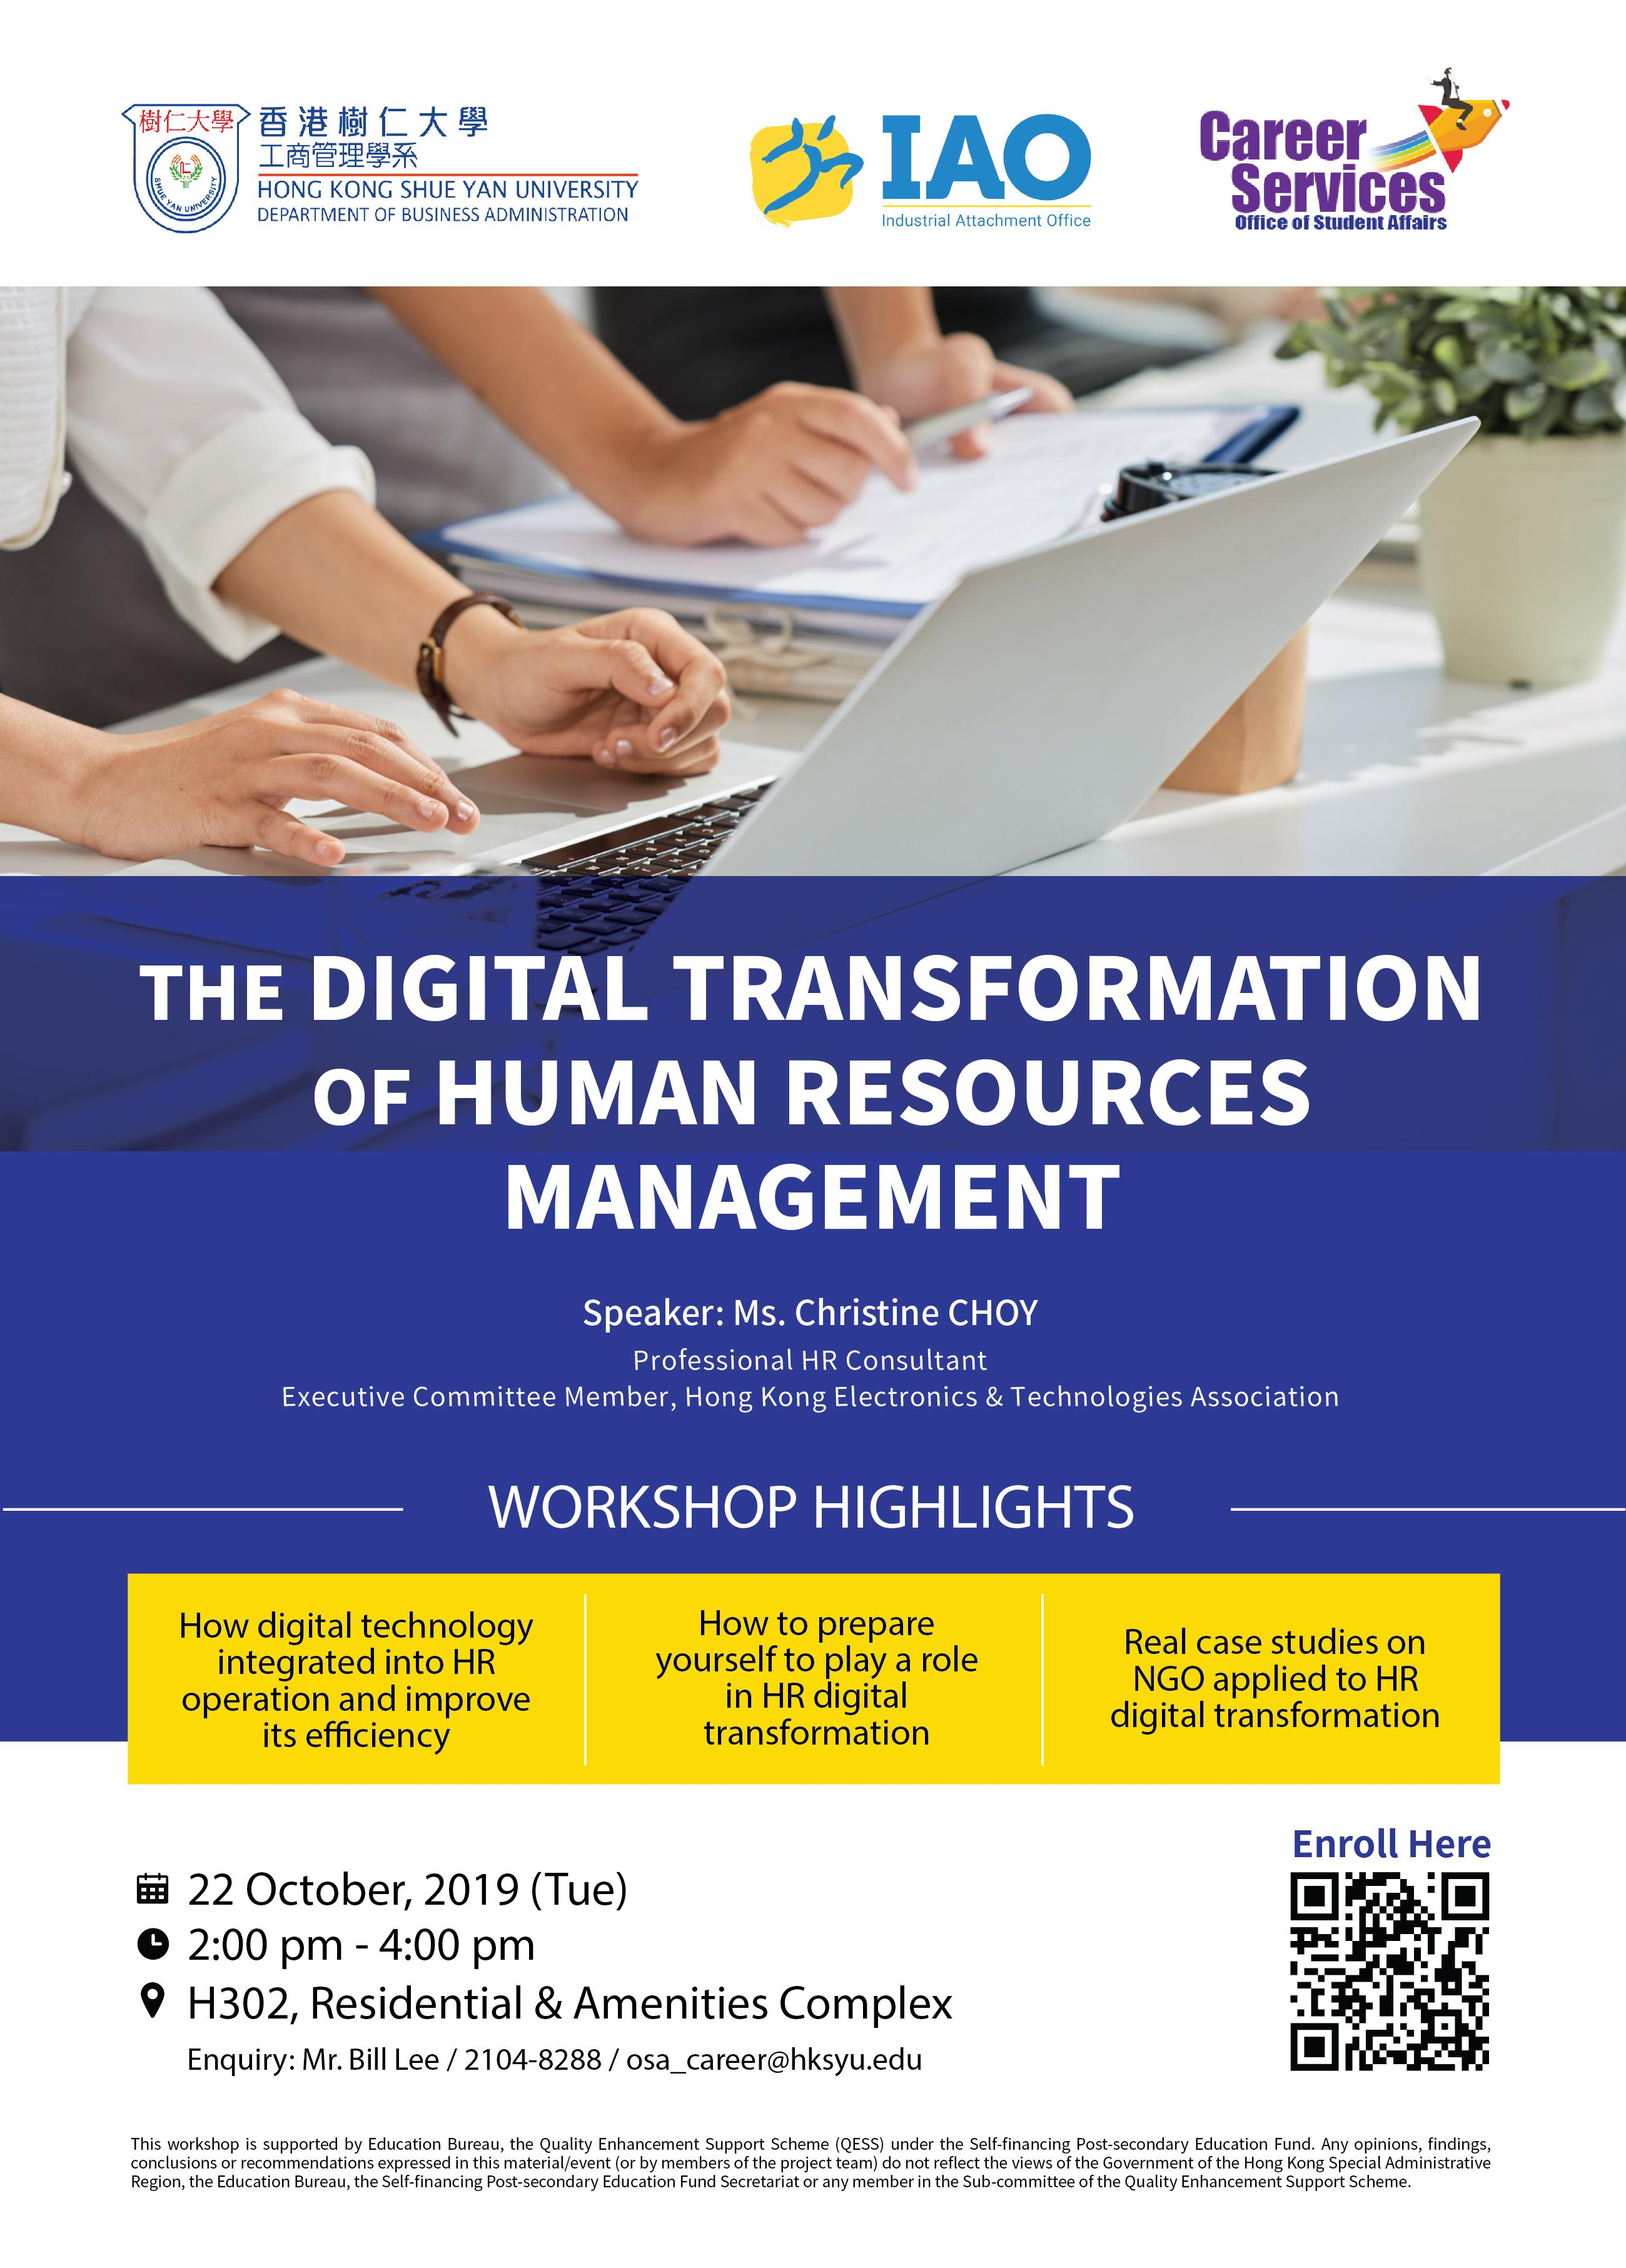 The Digital Transformation of Human Resources Management